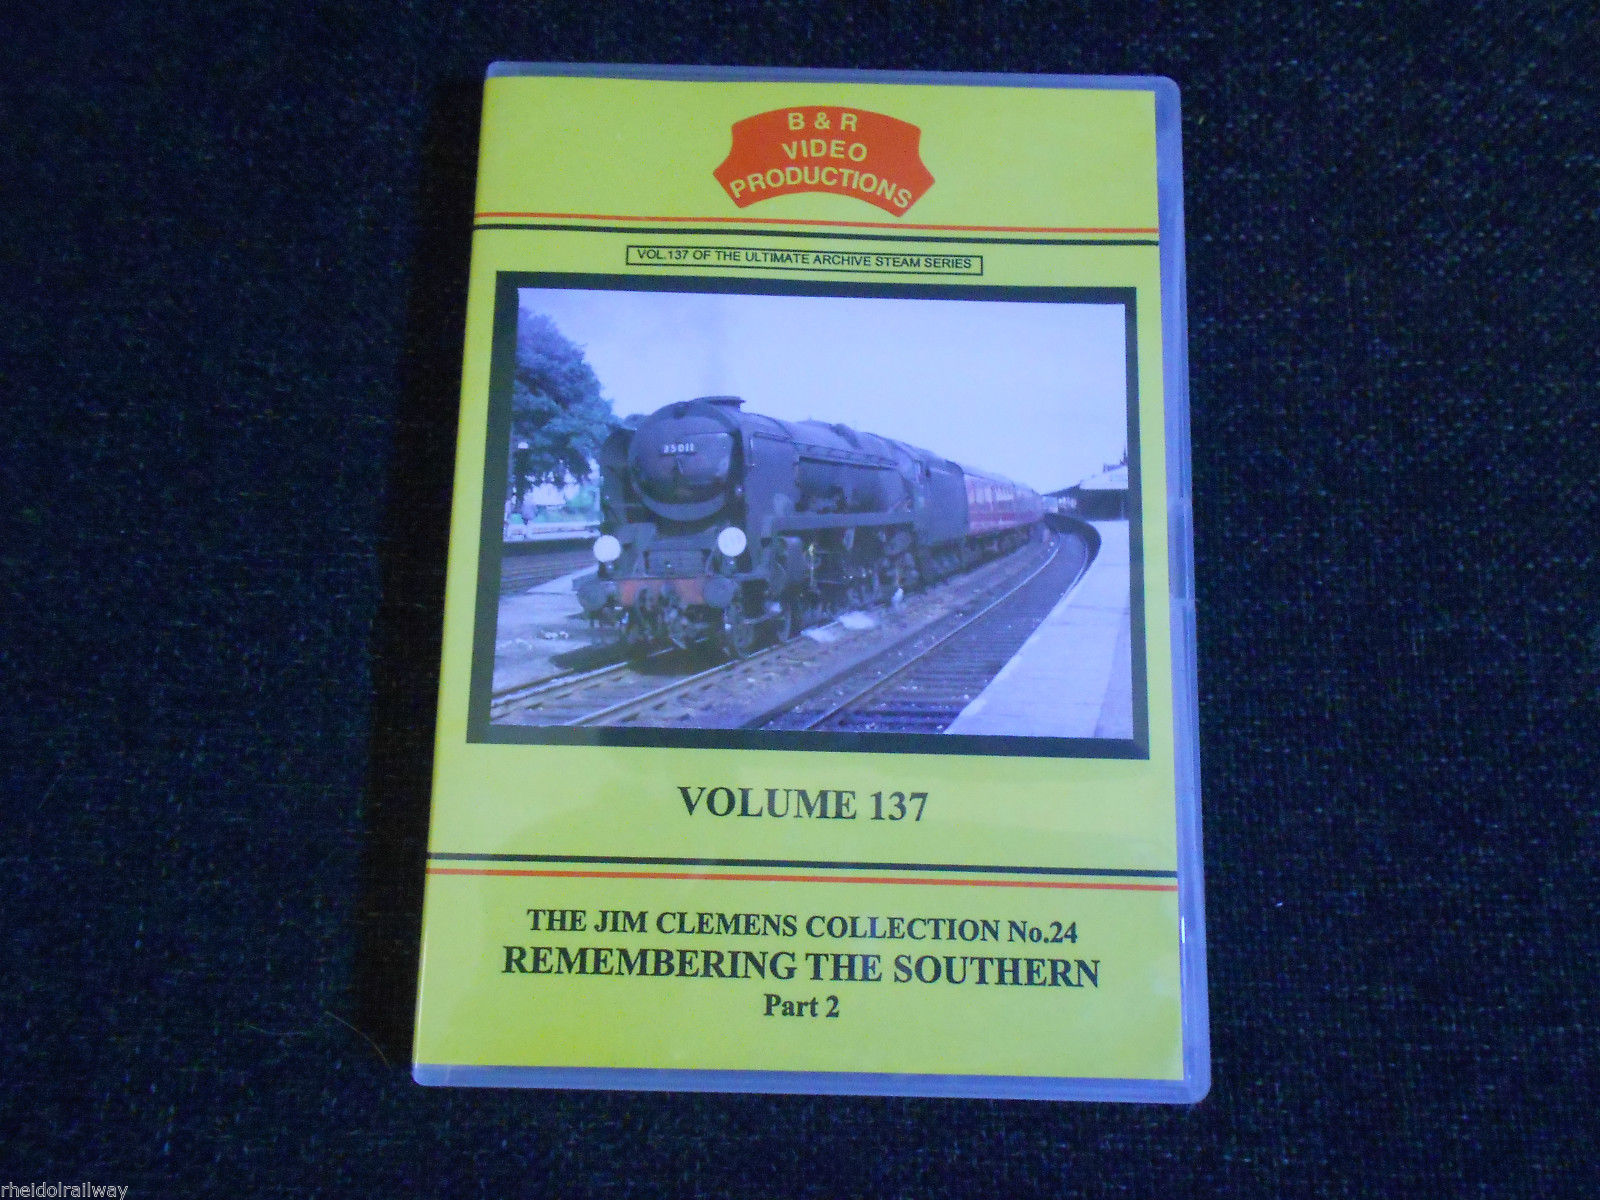 Waterloo, Southampton, Medstead, Remembering the Southern Part 2 B&R Vol 137 DVD - The Vale of Rheidol Railway